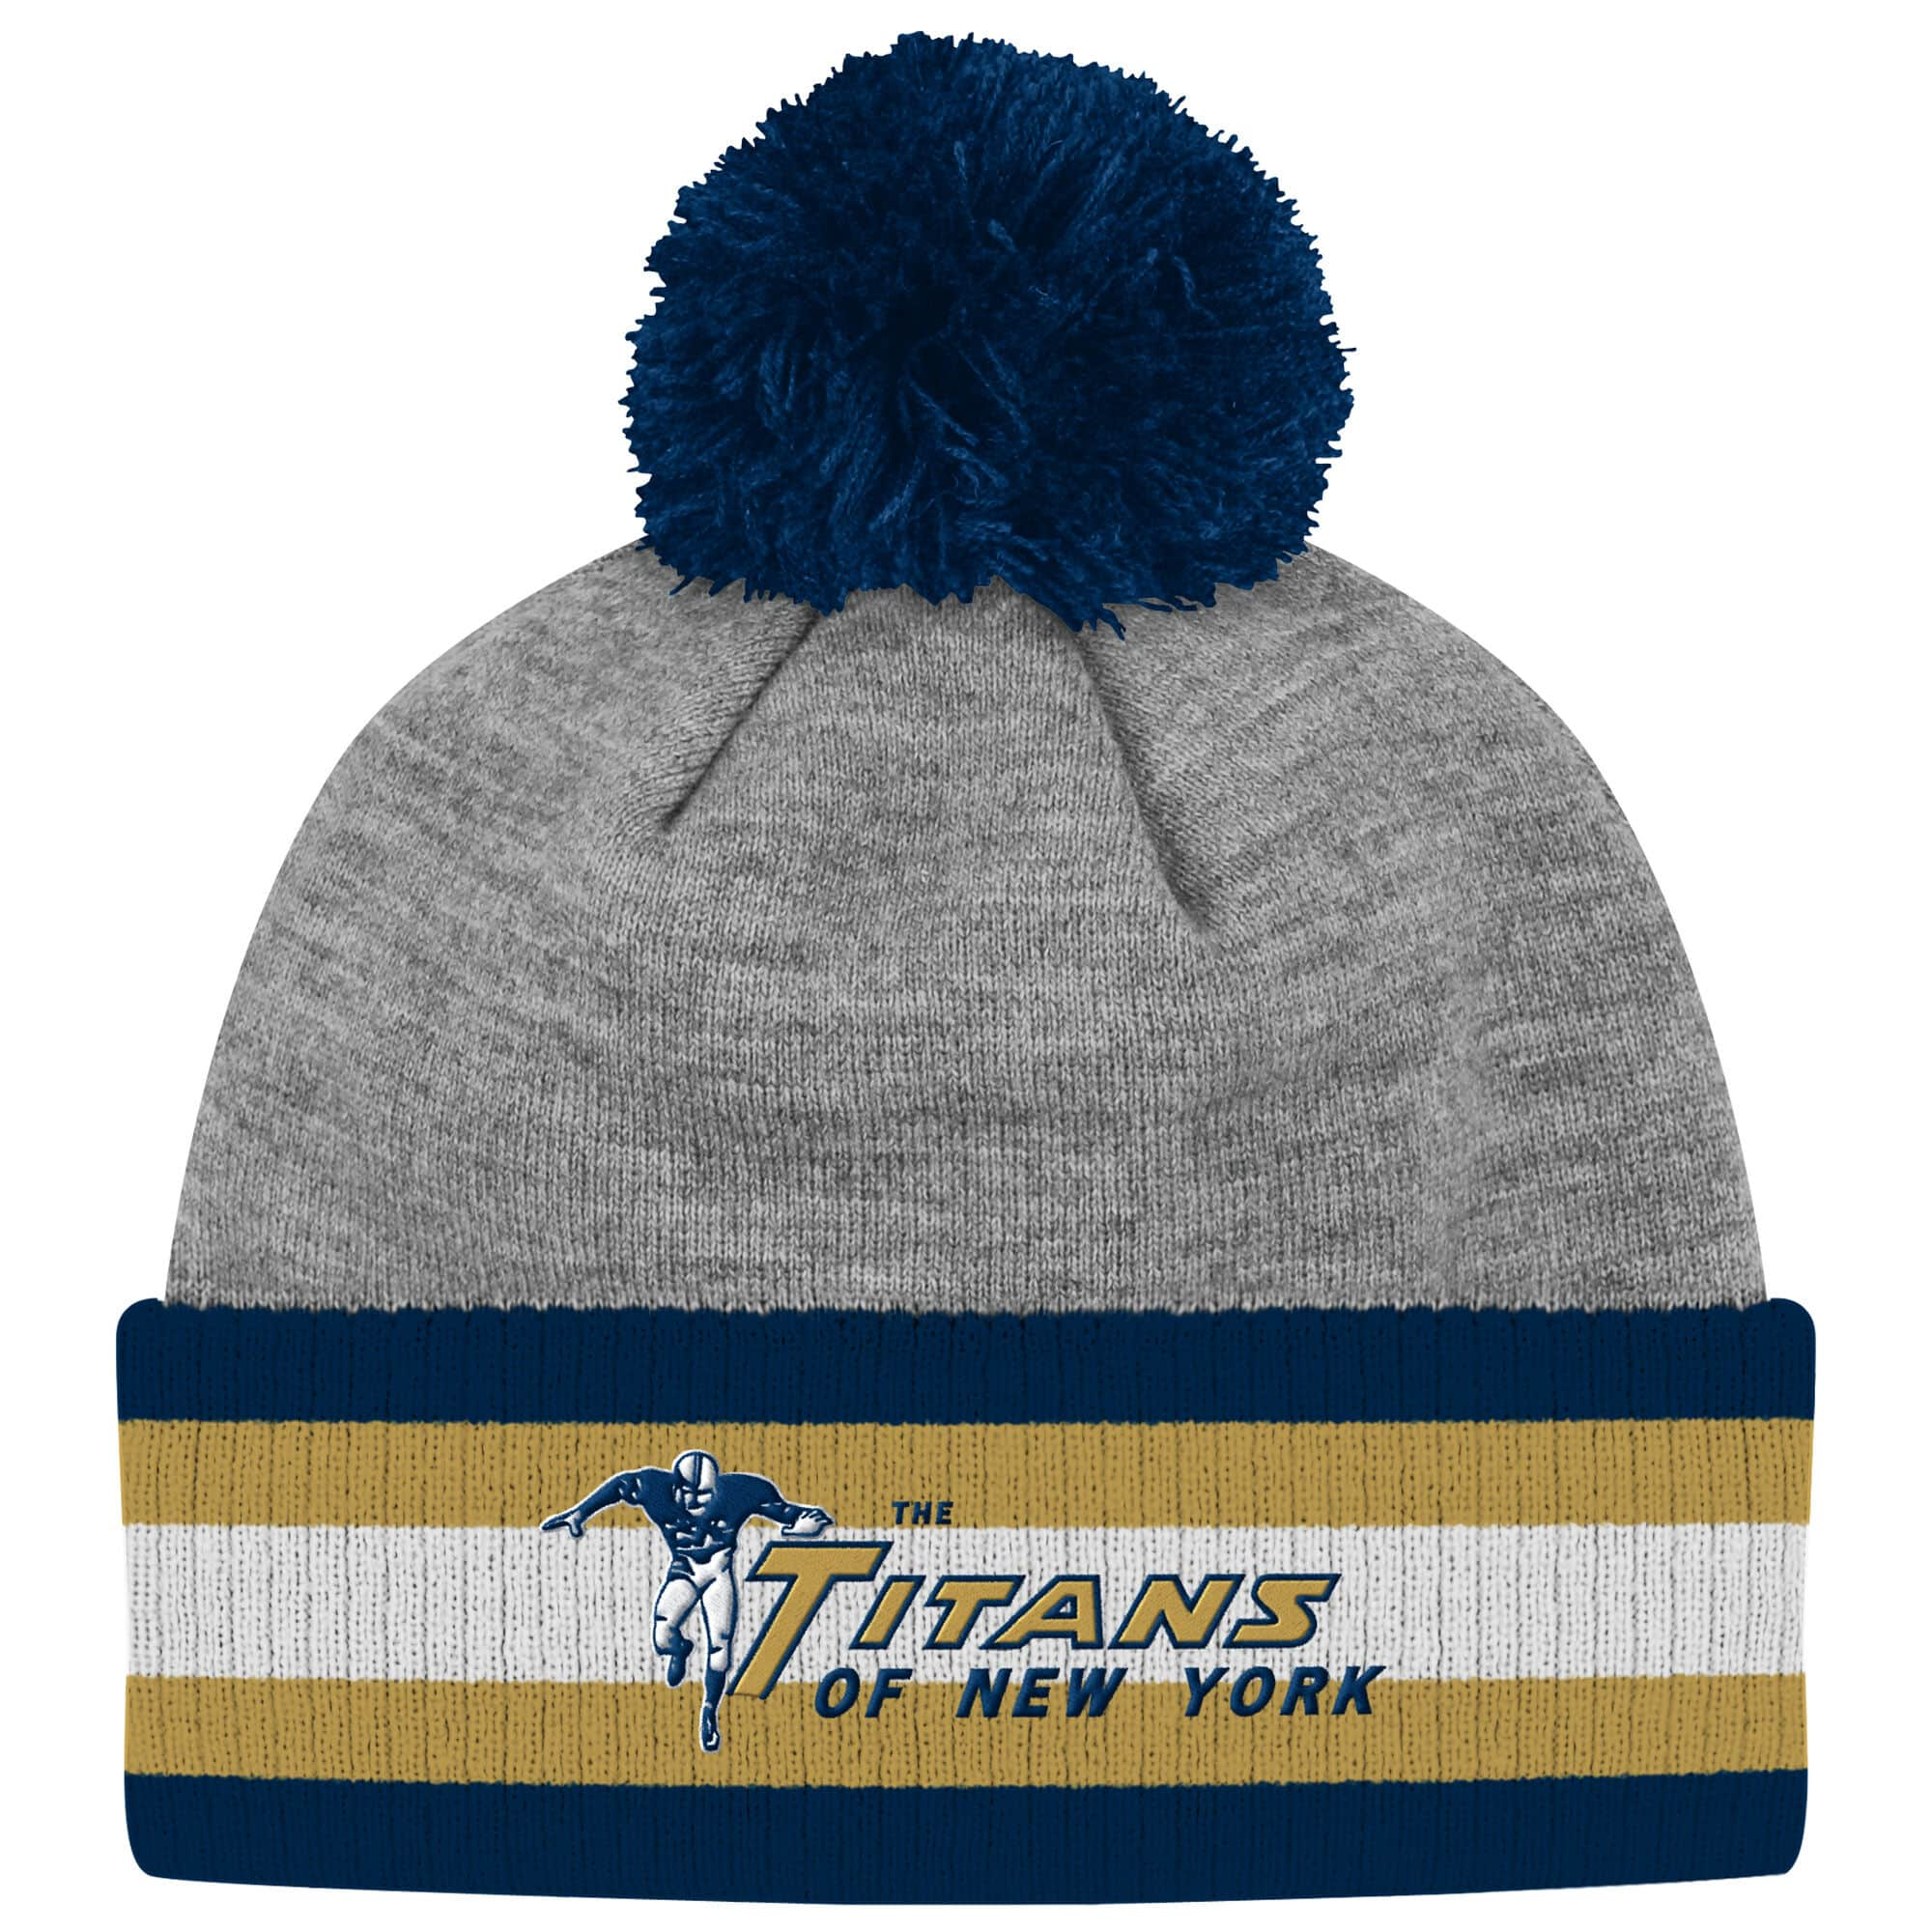 online store d7028 4e746 Cuffed Knit New York Titans [#261462775] - $25.00 ...